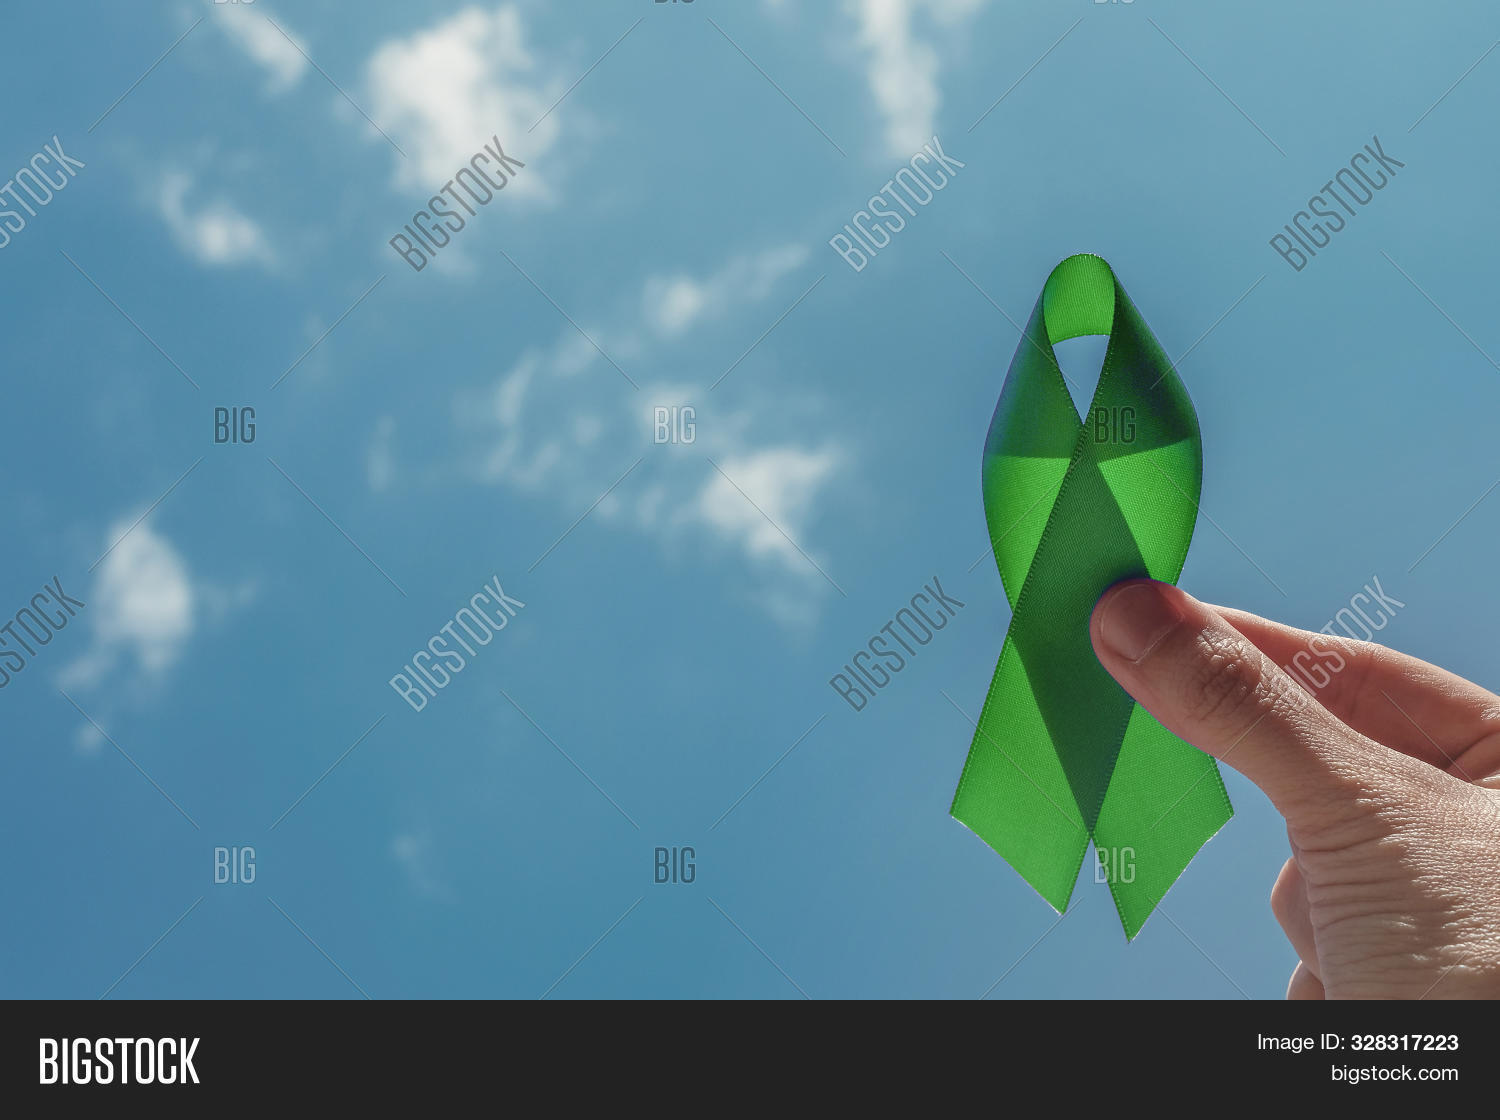 awareness,background,blue,campaign,cancer,care,child,children,concept,cure,day,disease,donation,family,green,hand,health,healthcare,help,hodgkin,hope,illness,kidney,kids,lime,listen,lyme,lymphoma,medical,mental,month,non,october,organ,protection,research,ribbon,sky,support,survivor,symbol,time,to,treatment,world